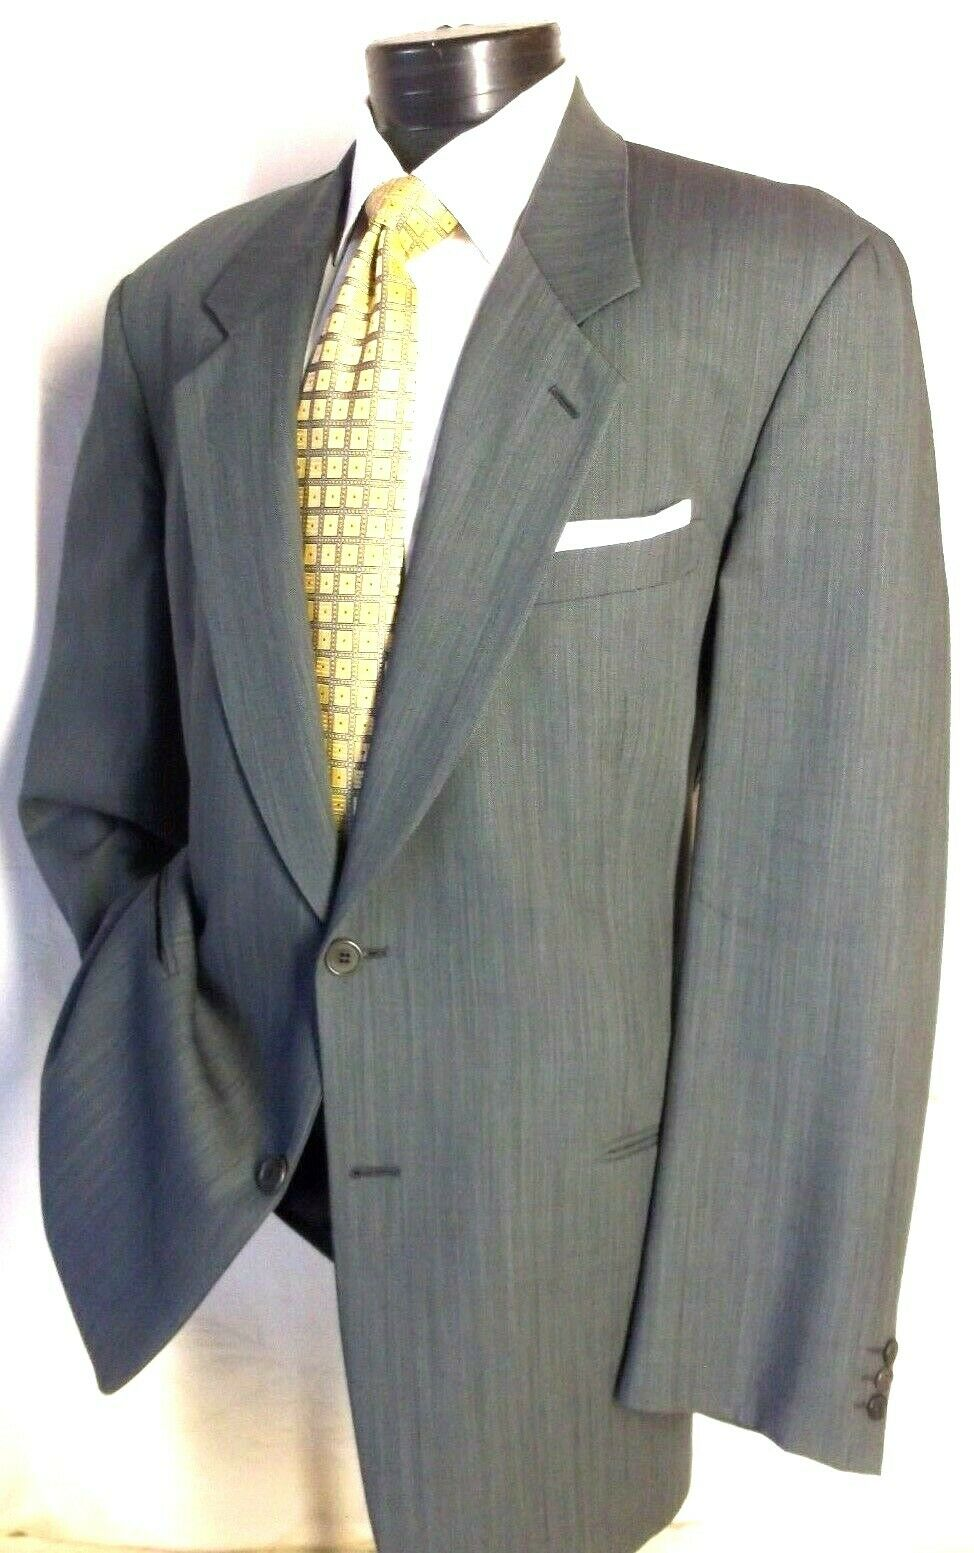 MANI by GIORGIO ARMANI Green Textured 2 Button suit 44L Pants 39W 30L